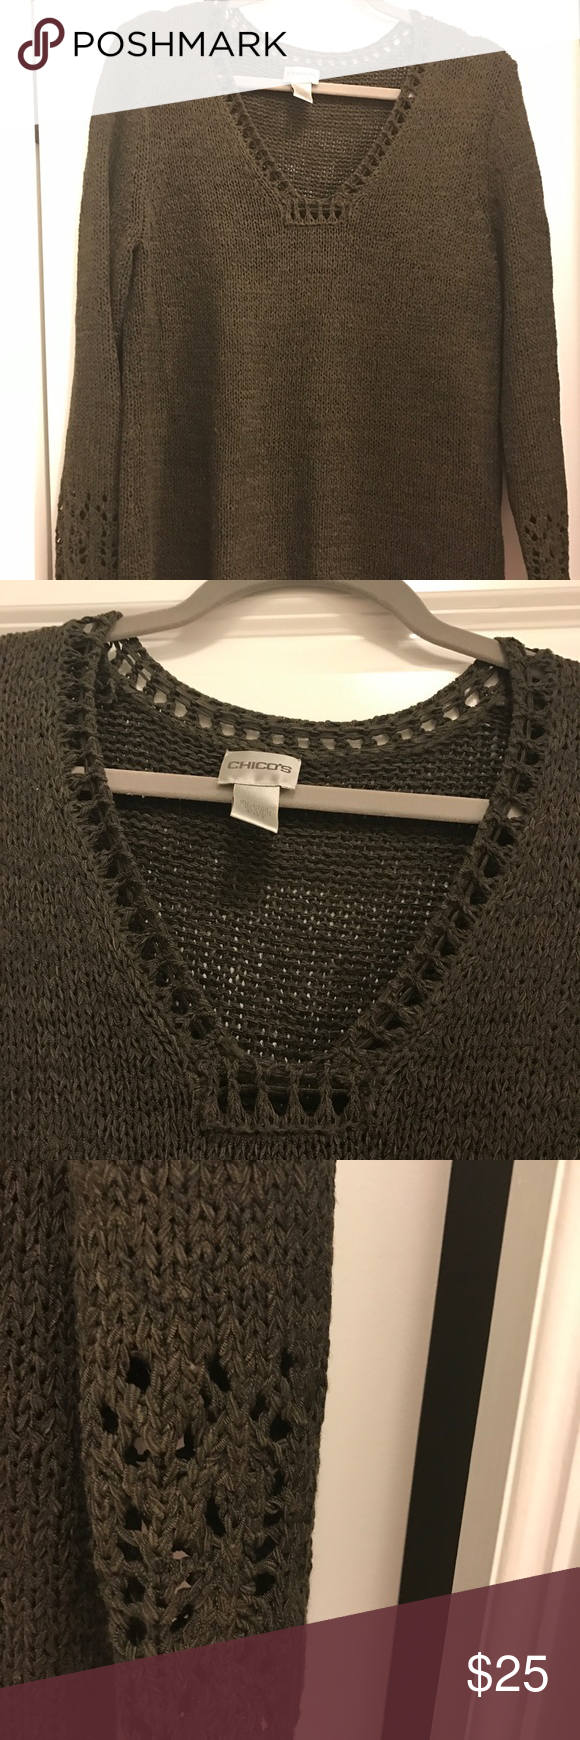 Chico's brown crochet sweater with sleeve detail | Beautiful ...